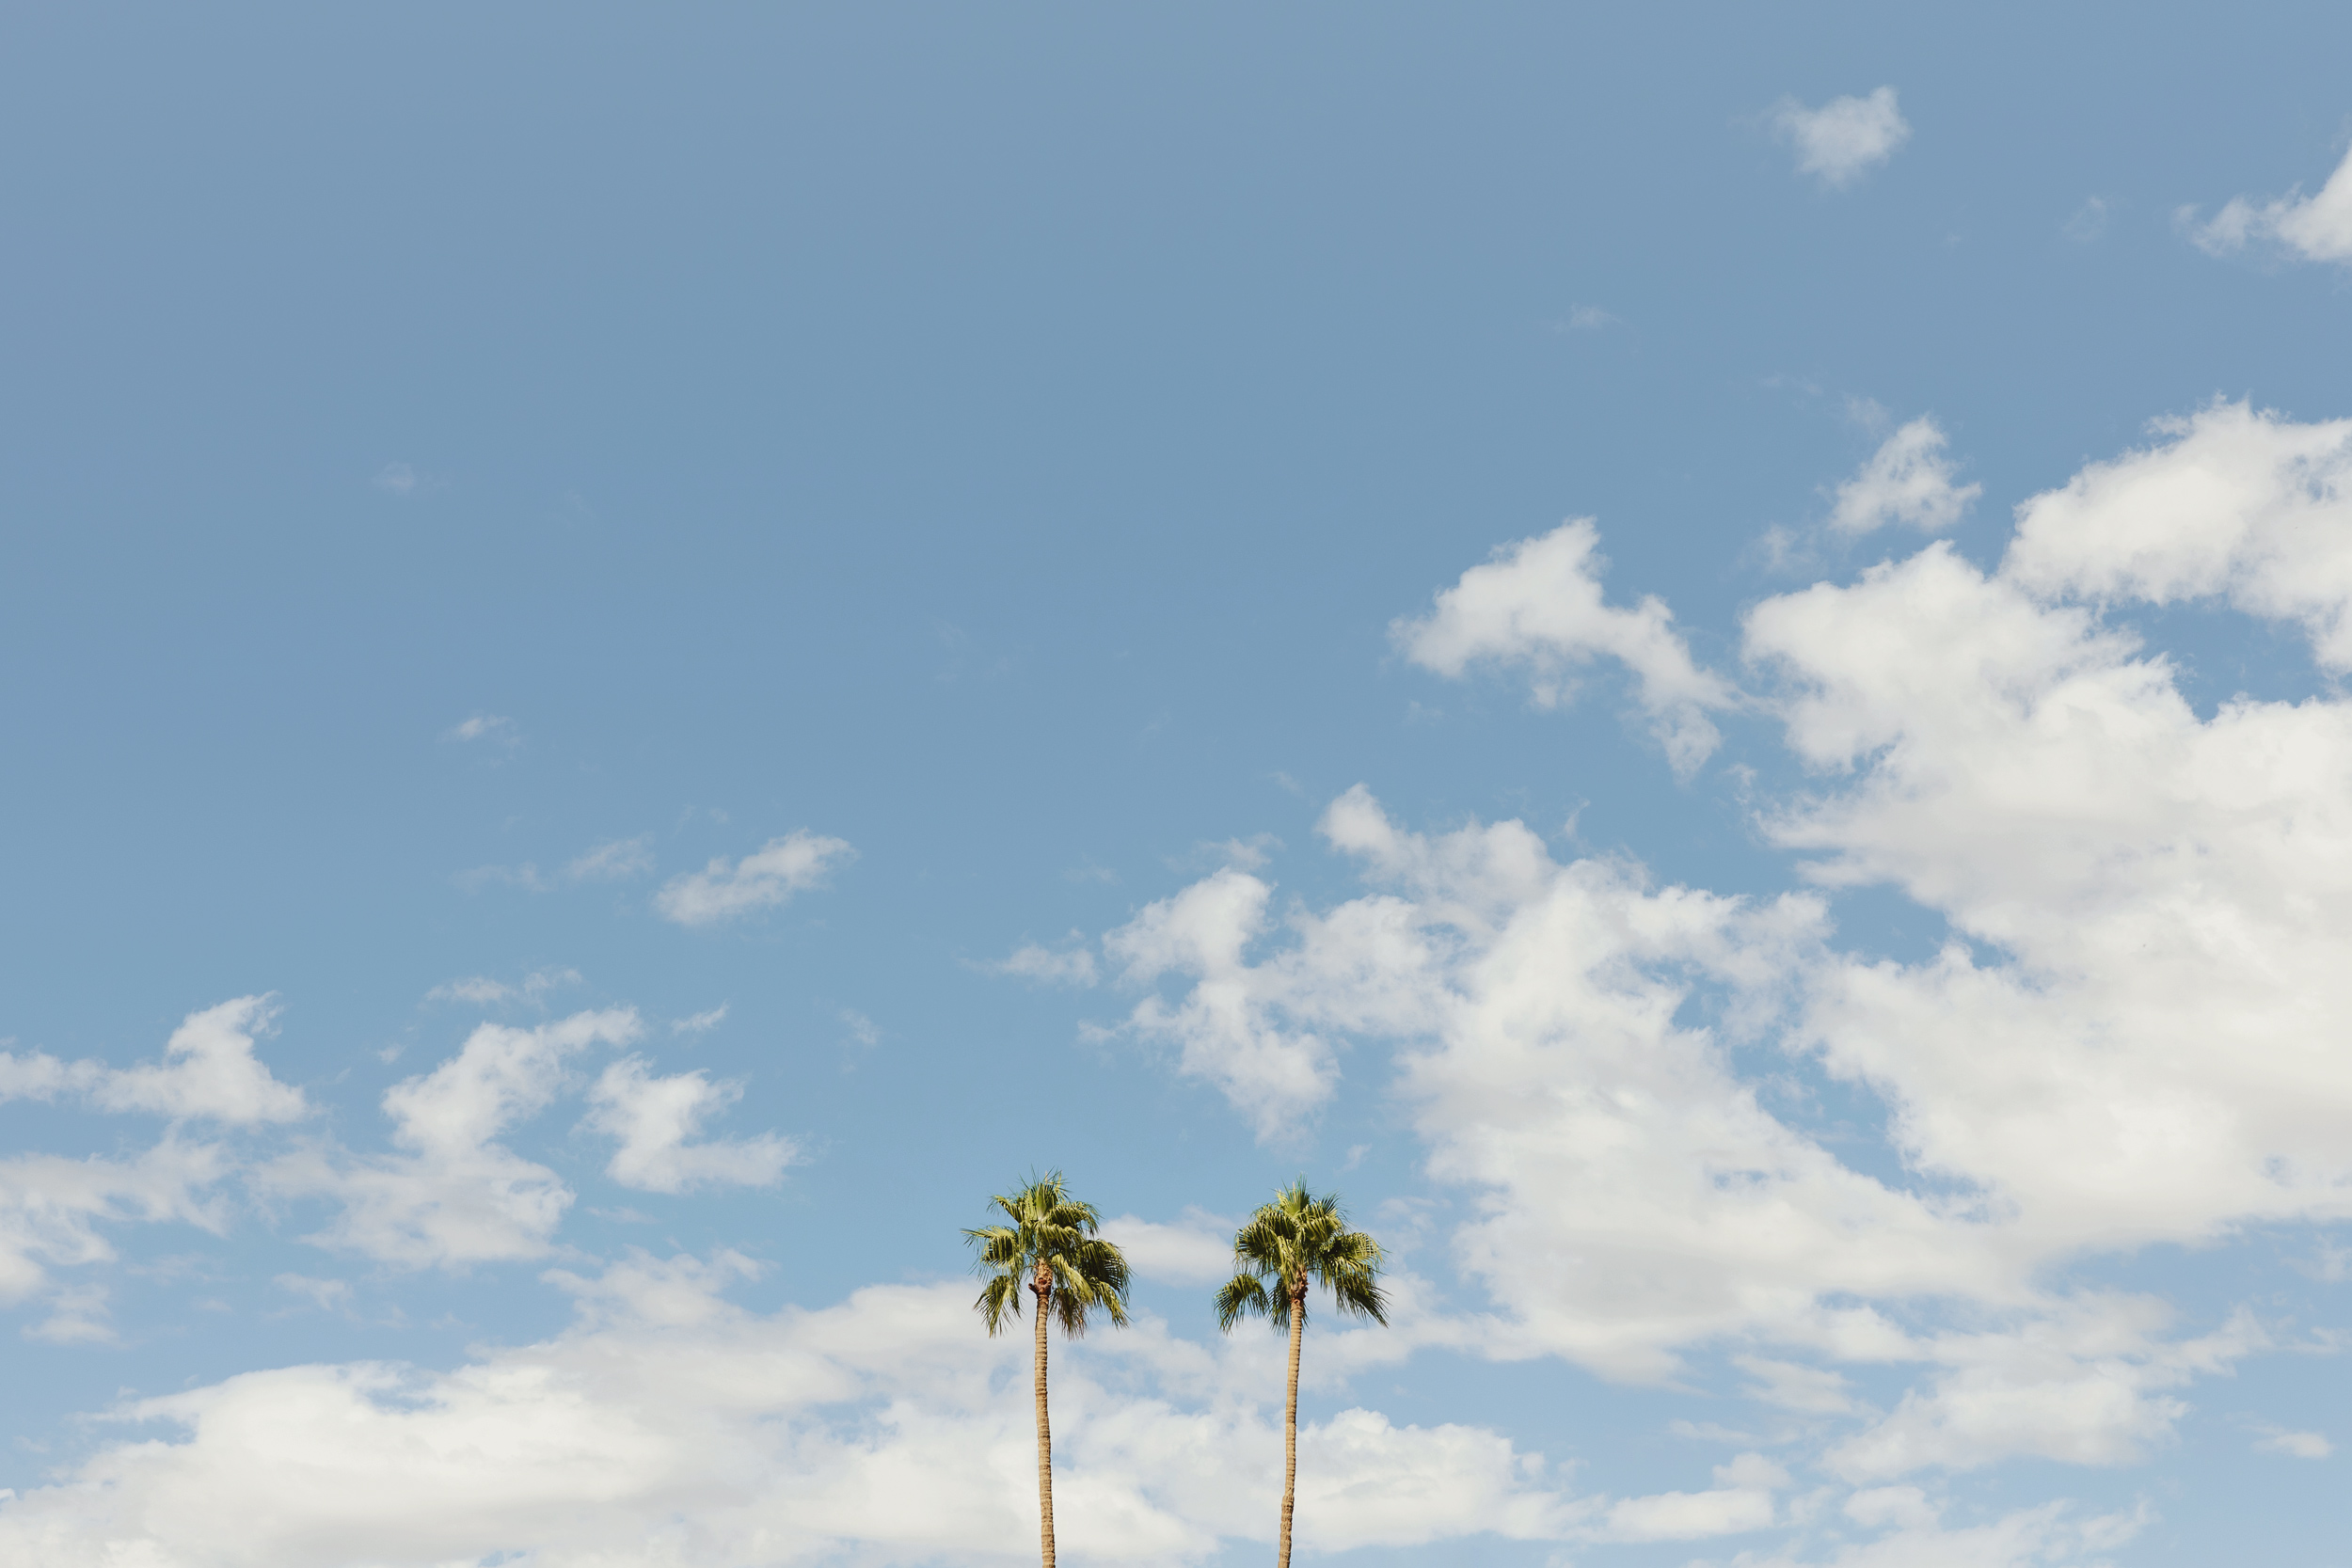 Two palm trees on a cloudy day. Kimberly Genevieve lifestyle photographer Los Angeles